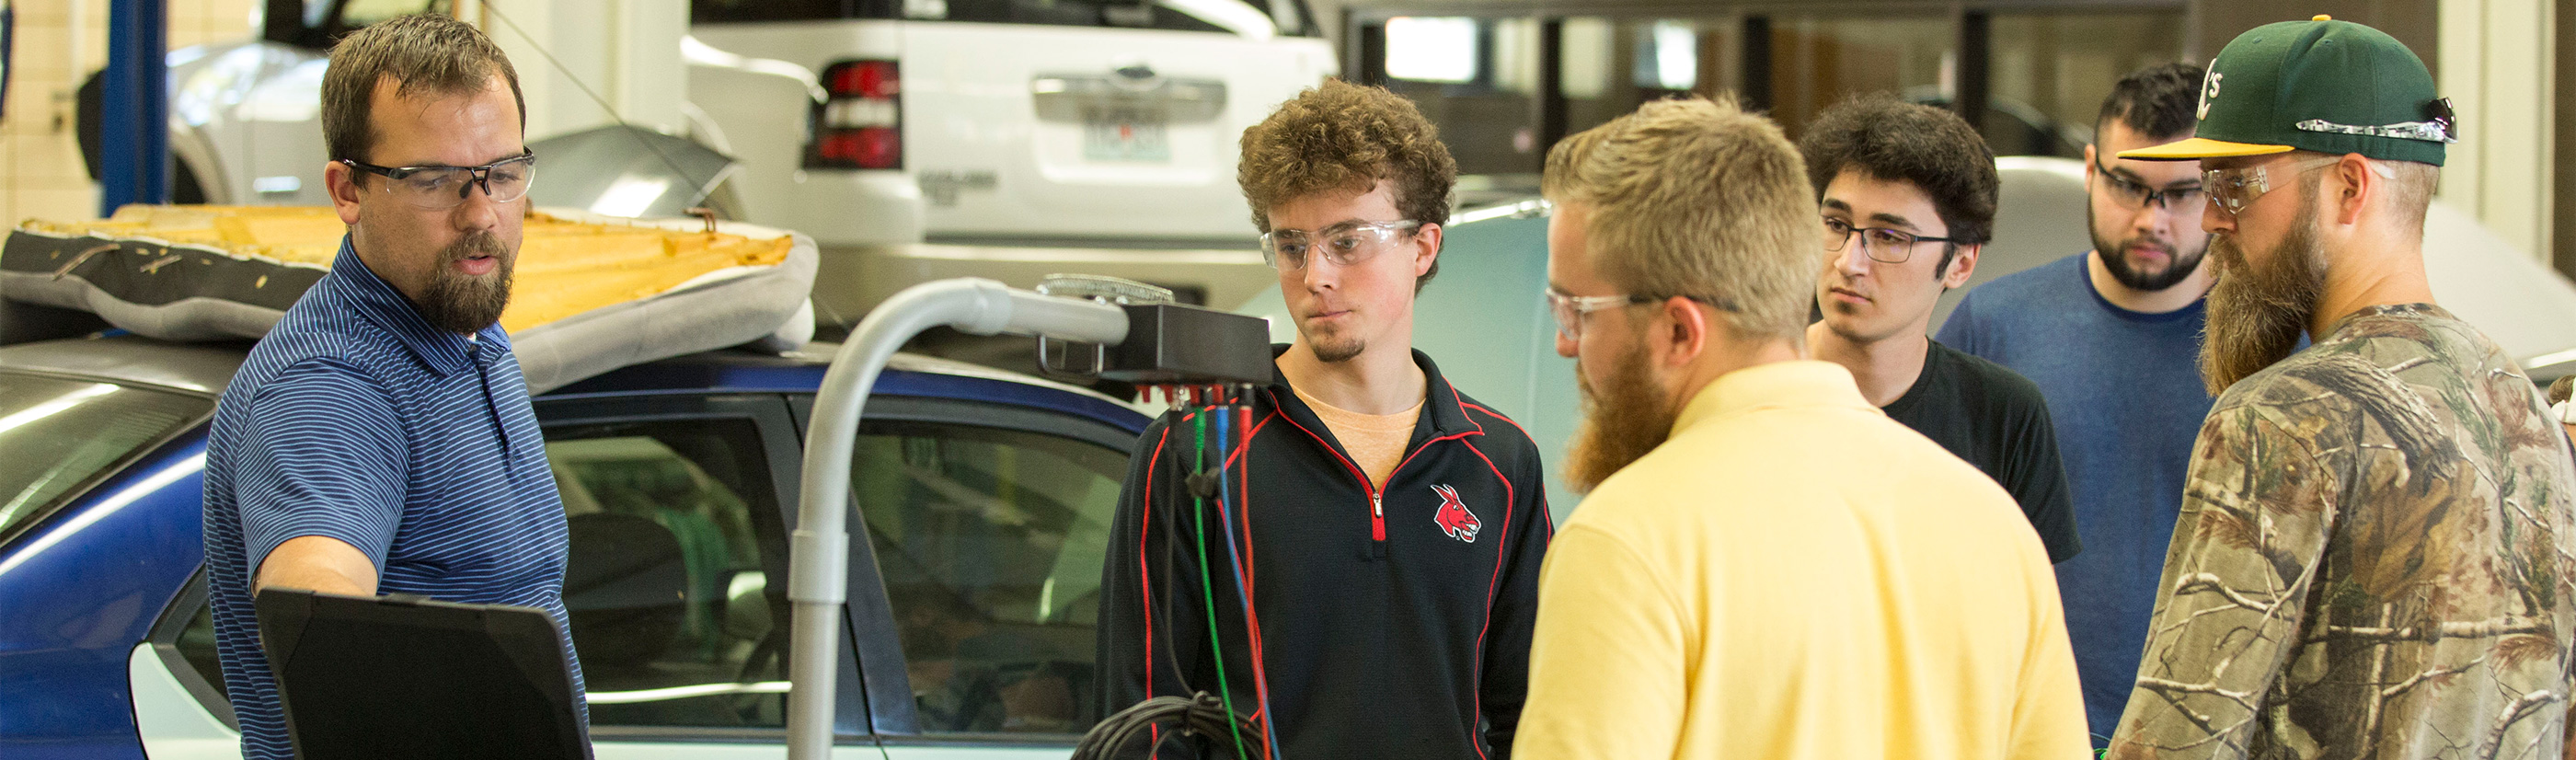 A group of students are watching an instructor use a diagnostic computer in an automotive lab.